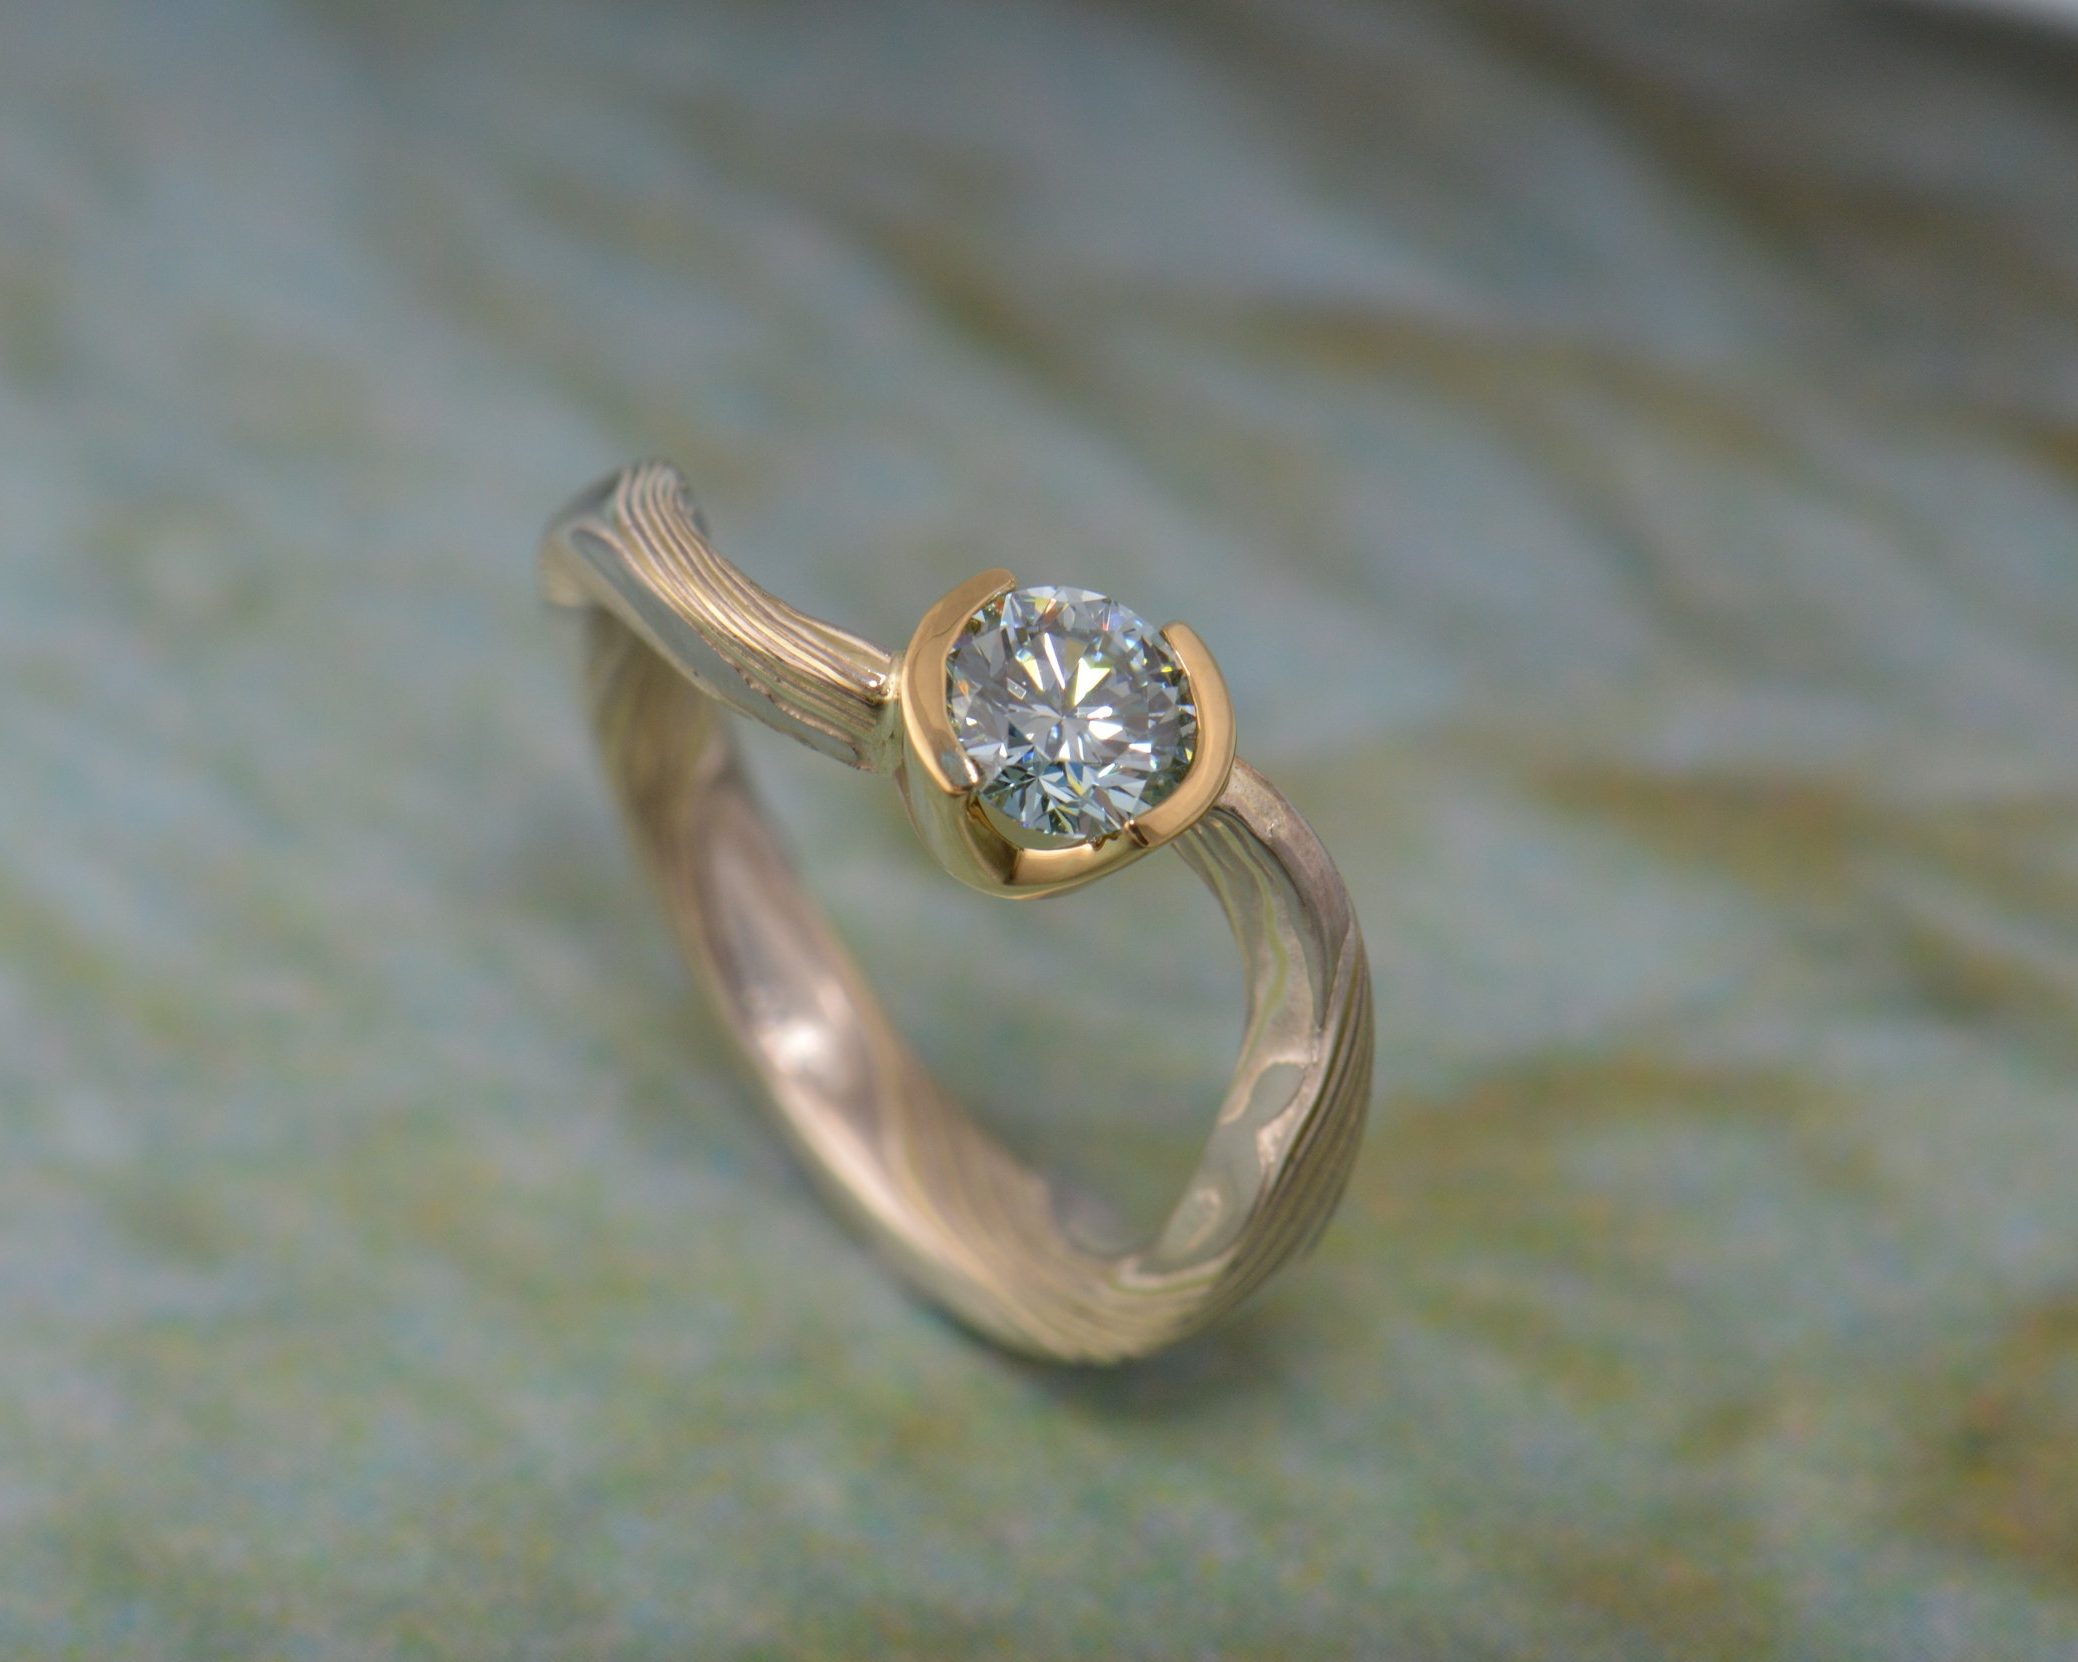 Design an engagement ring with a twist and a rare center stone. An aqua diamond in this case.